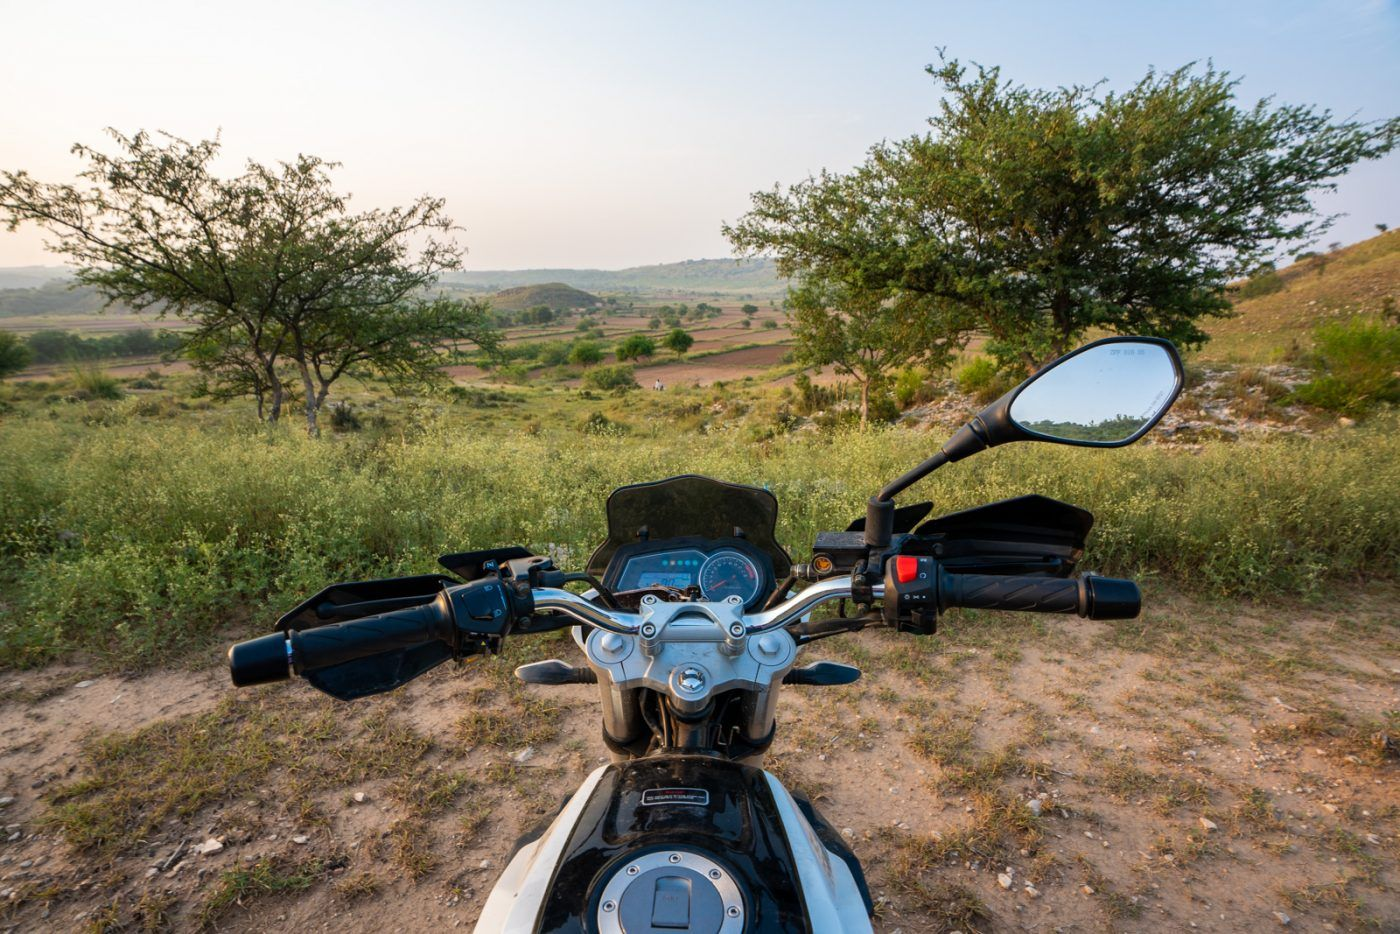 Fears, gears, and leers: learning to bike in Pakistan: learning to motorbike as a woman in Pakistan | Lost With Purpose